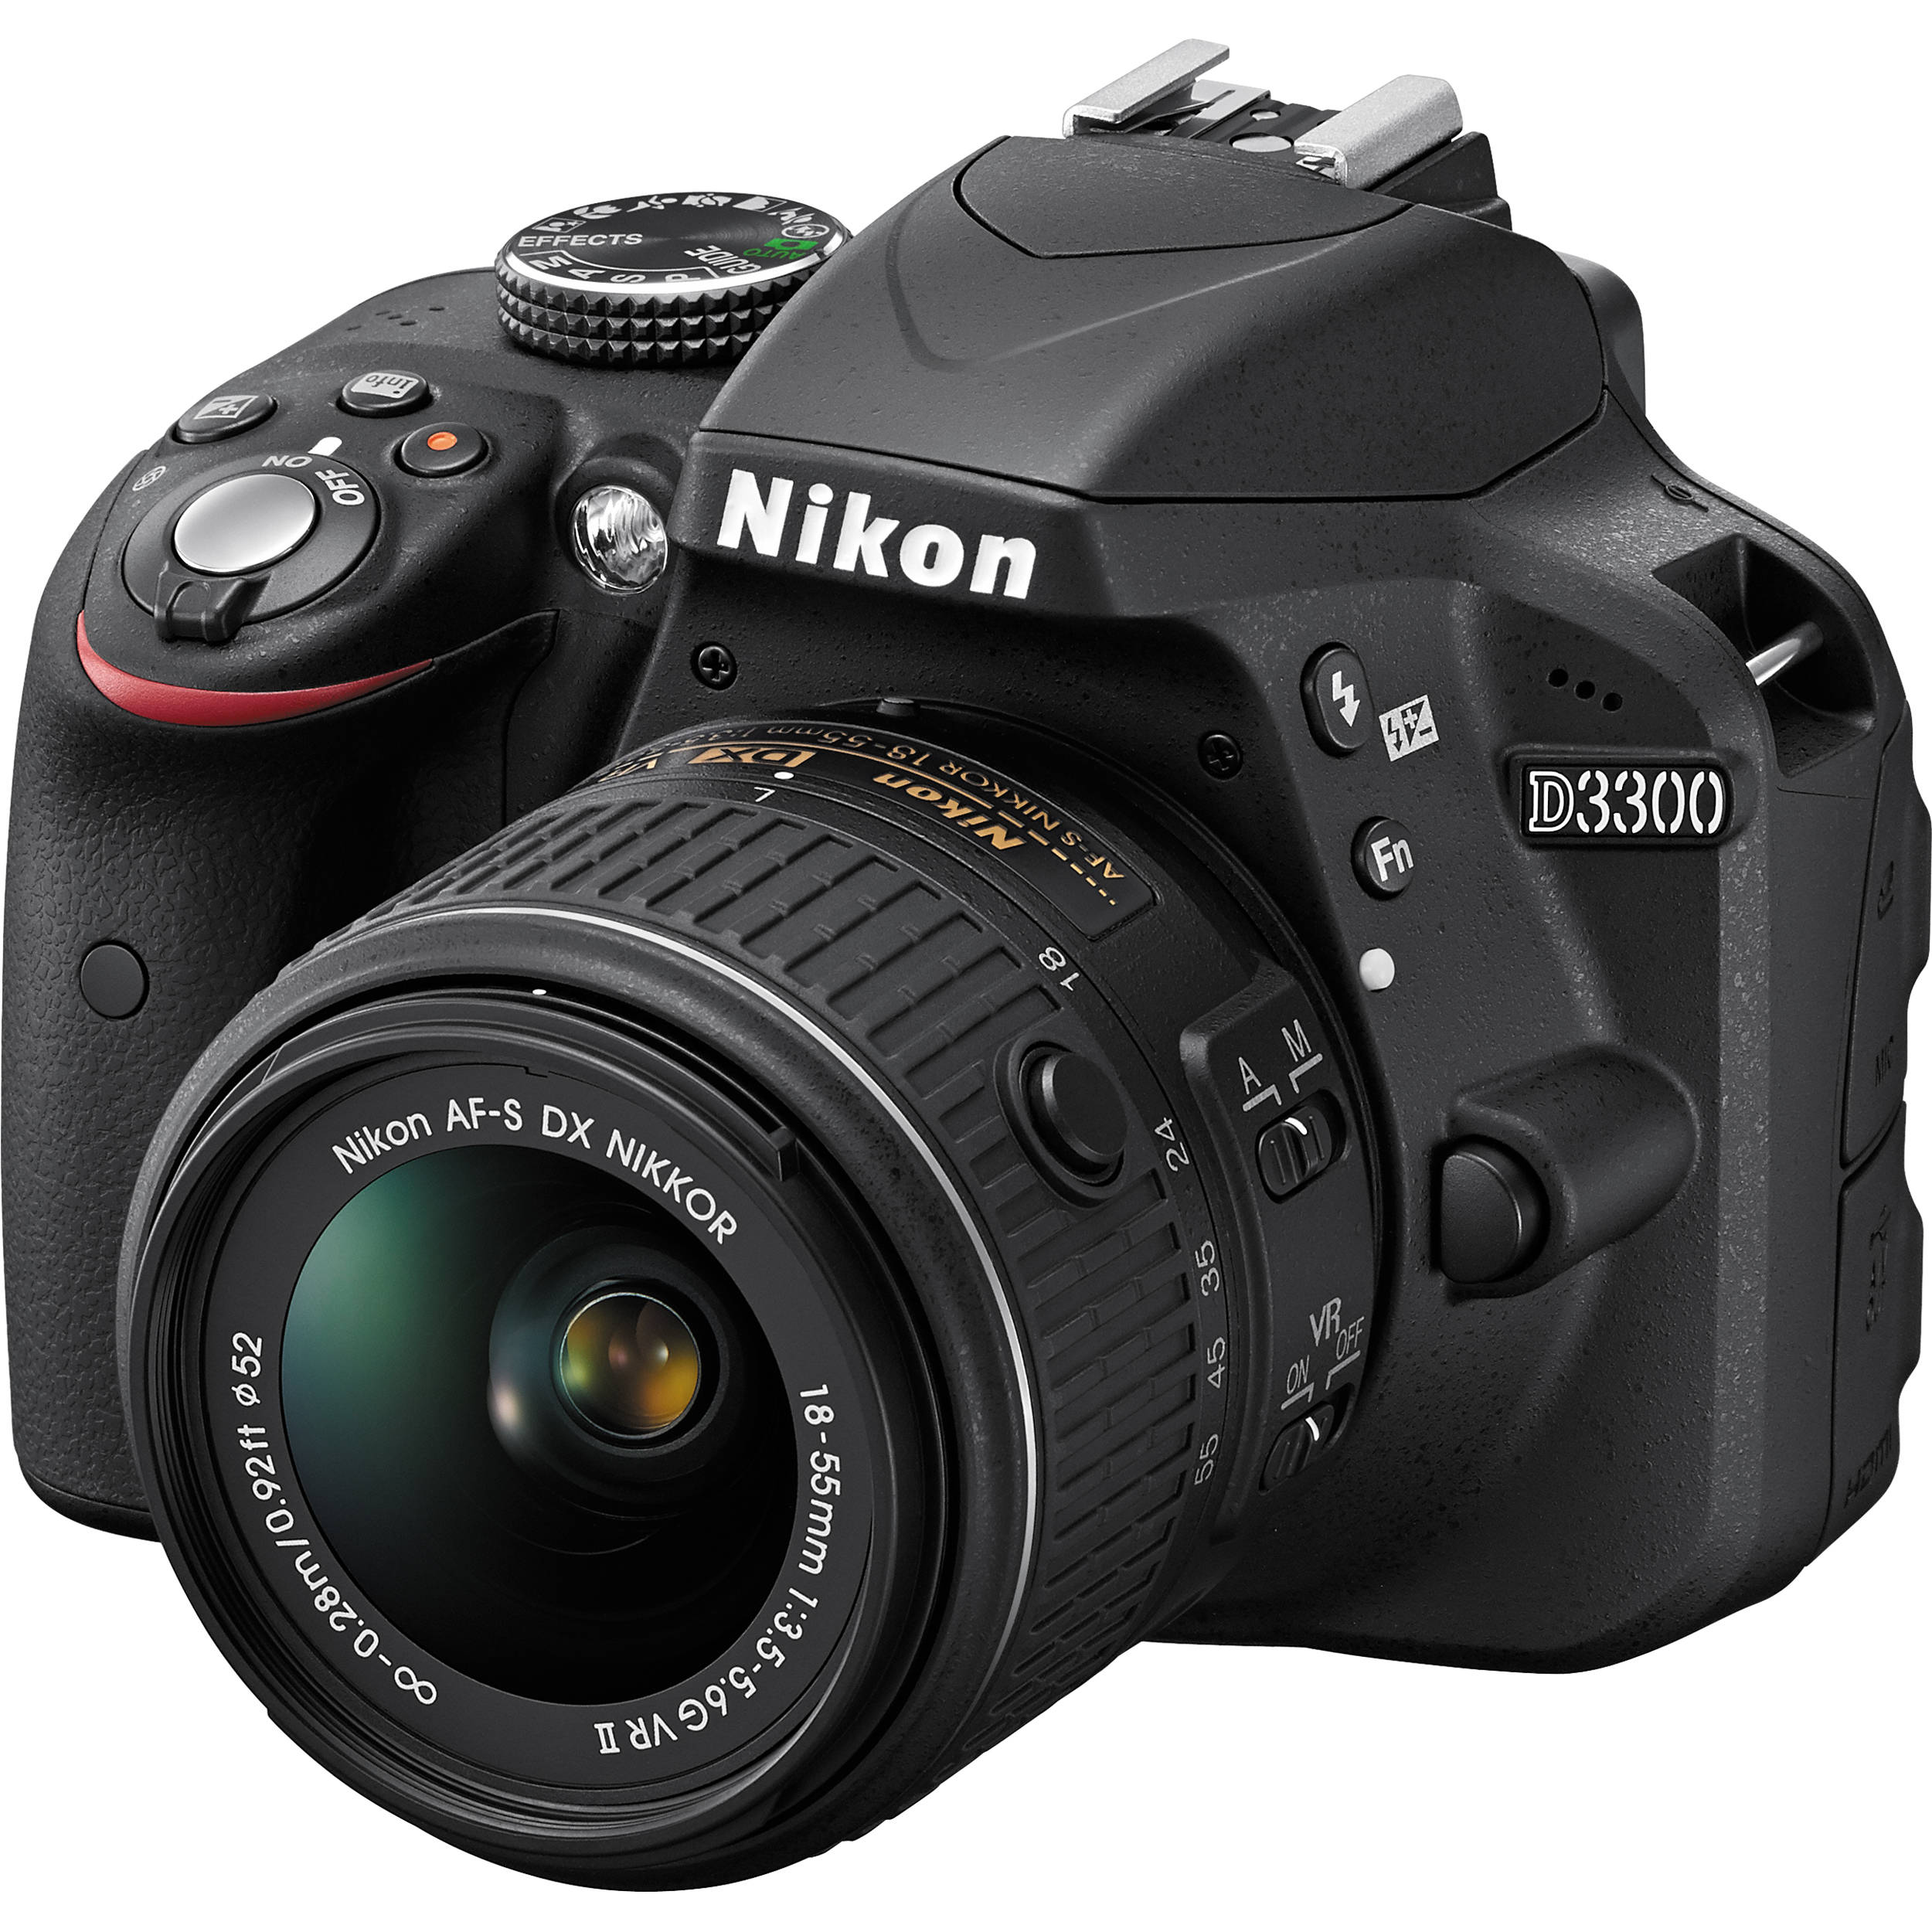 Camera Nikkon Dslr Camera nikon d3300 dslr camera with 18 55mm lens black 1532 bh photo black